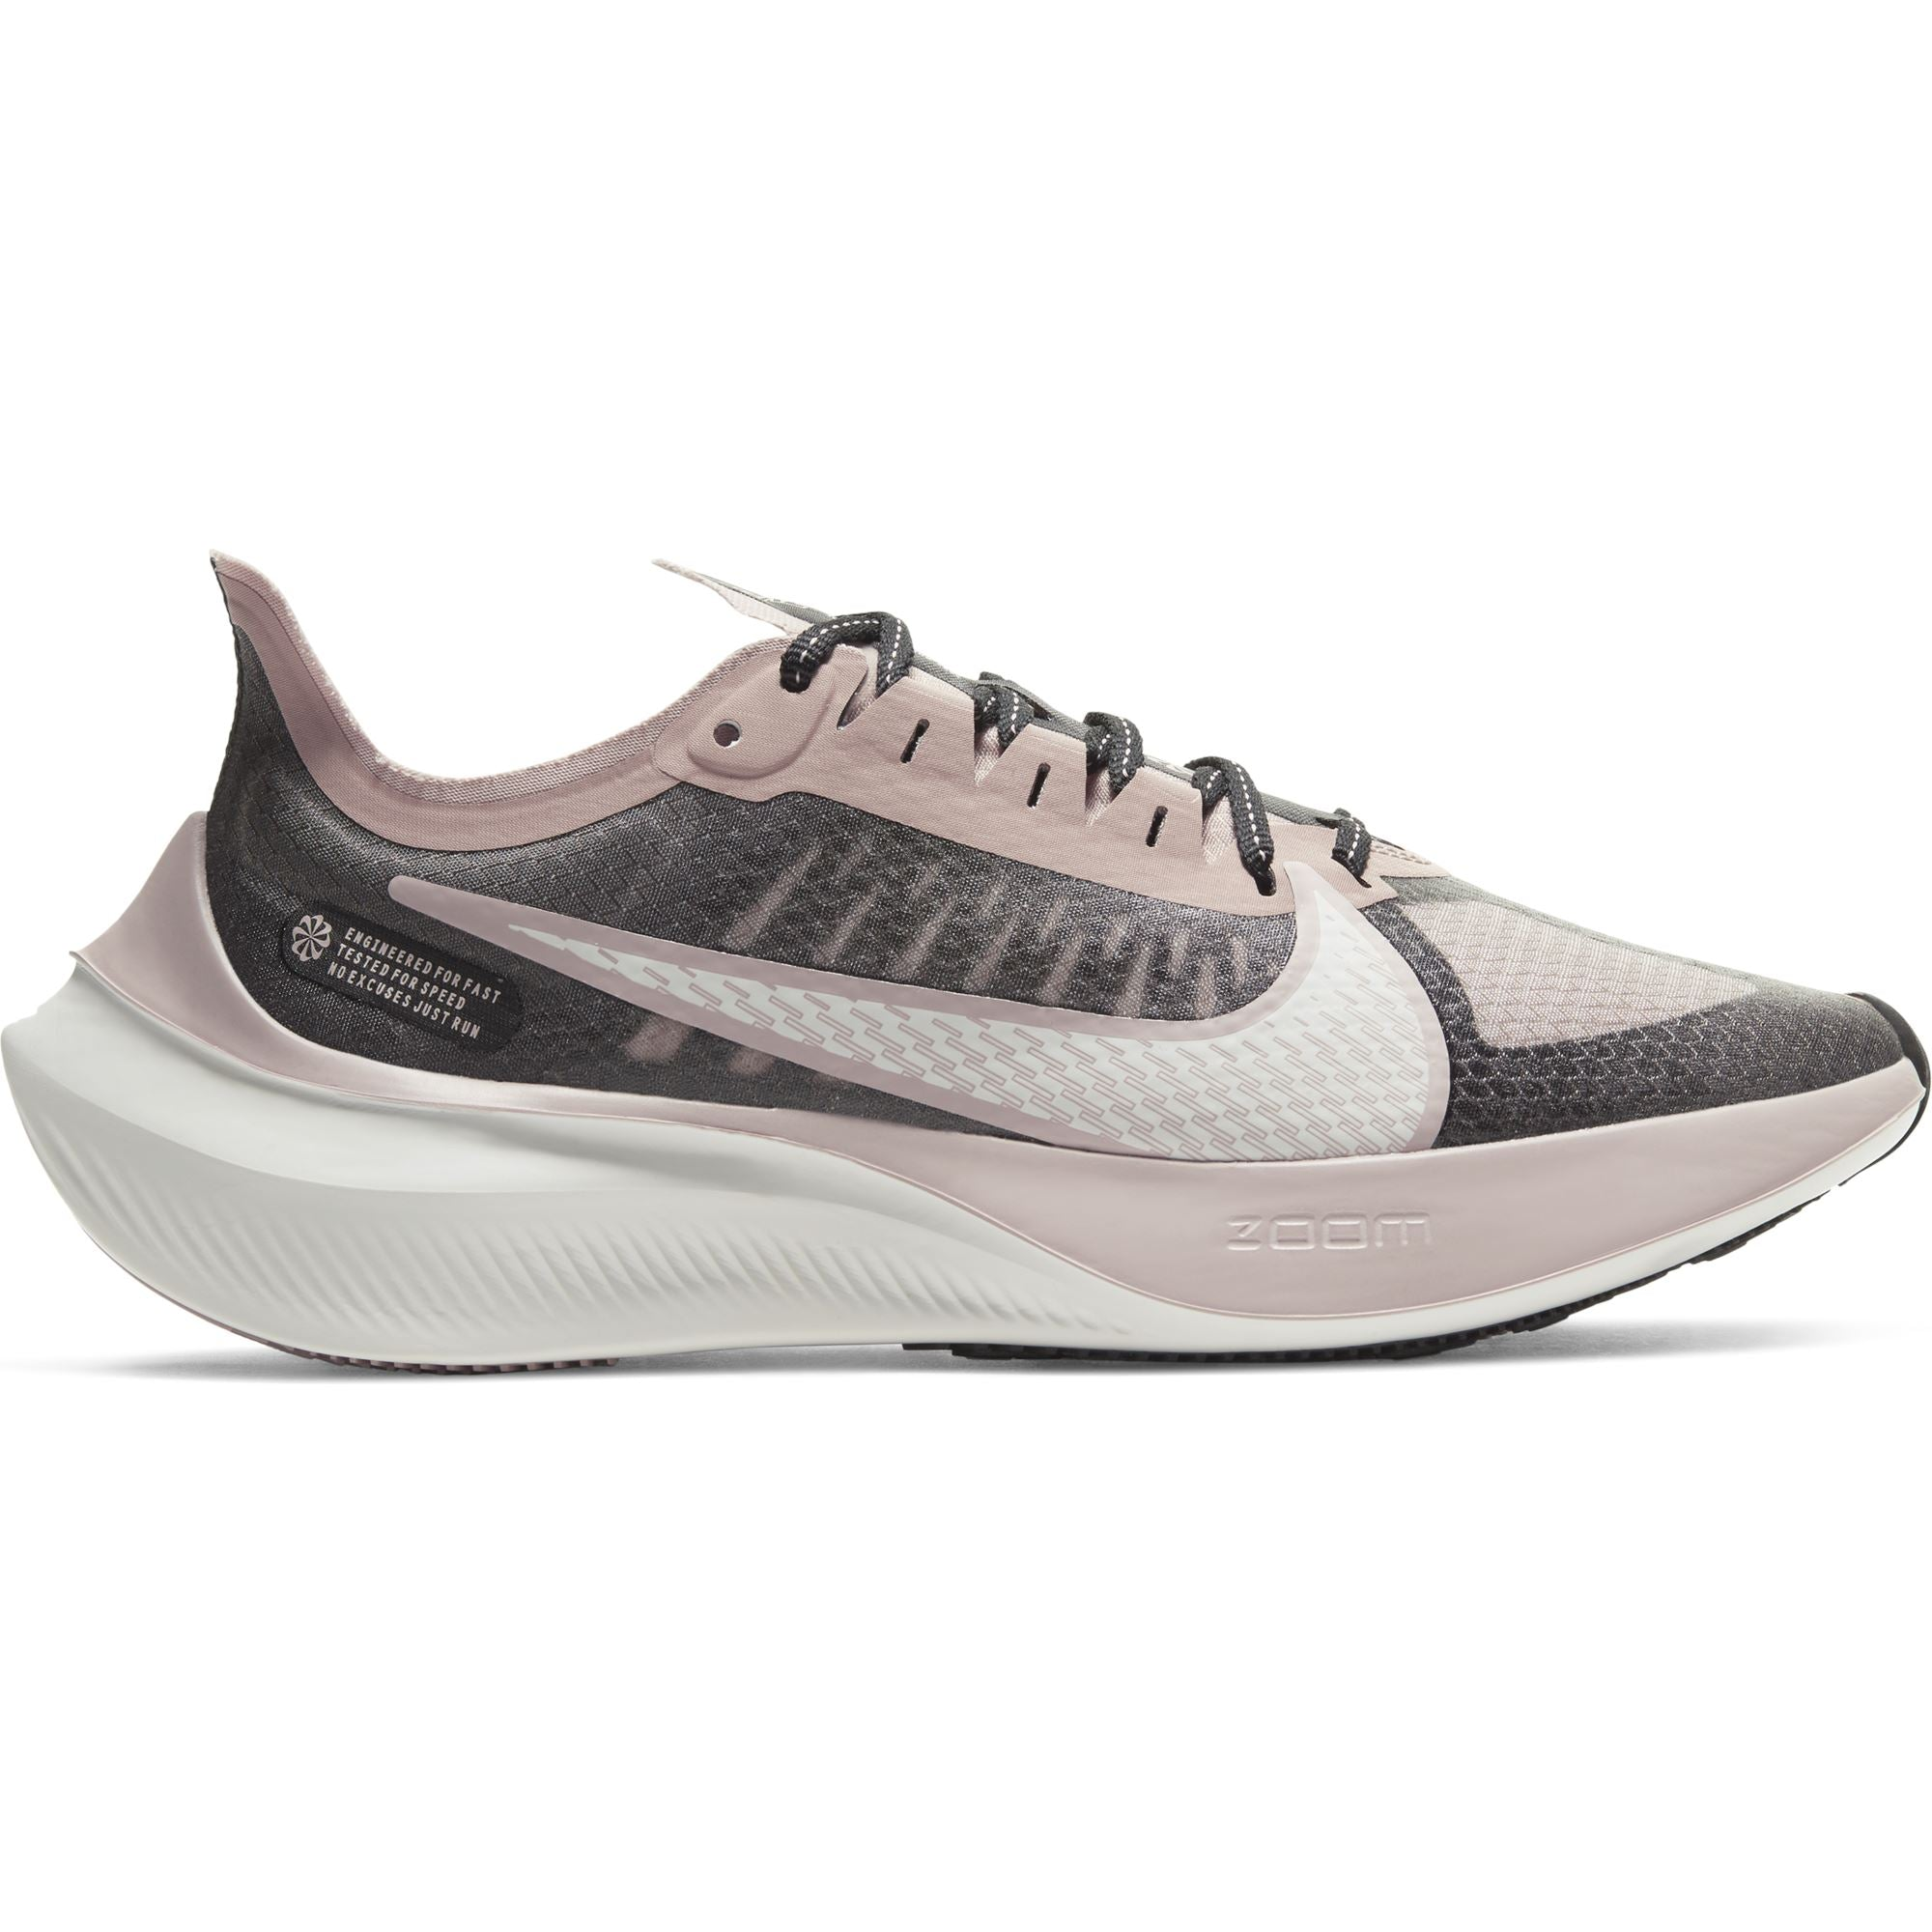 Nike Women's Zoom Gravity Running Shoe - Black/Platinum Tint/Stone Mauve SP-Footwear-Womens Nike